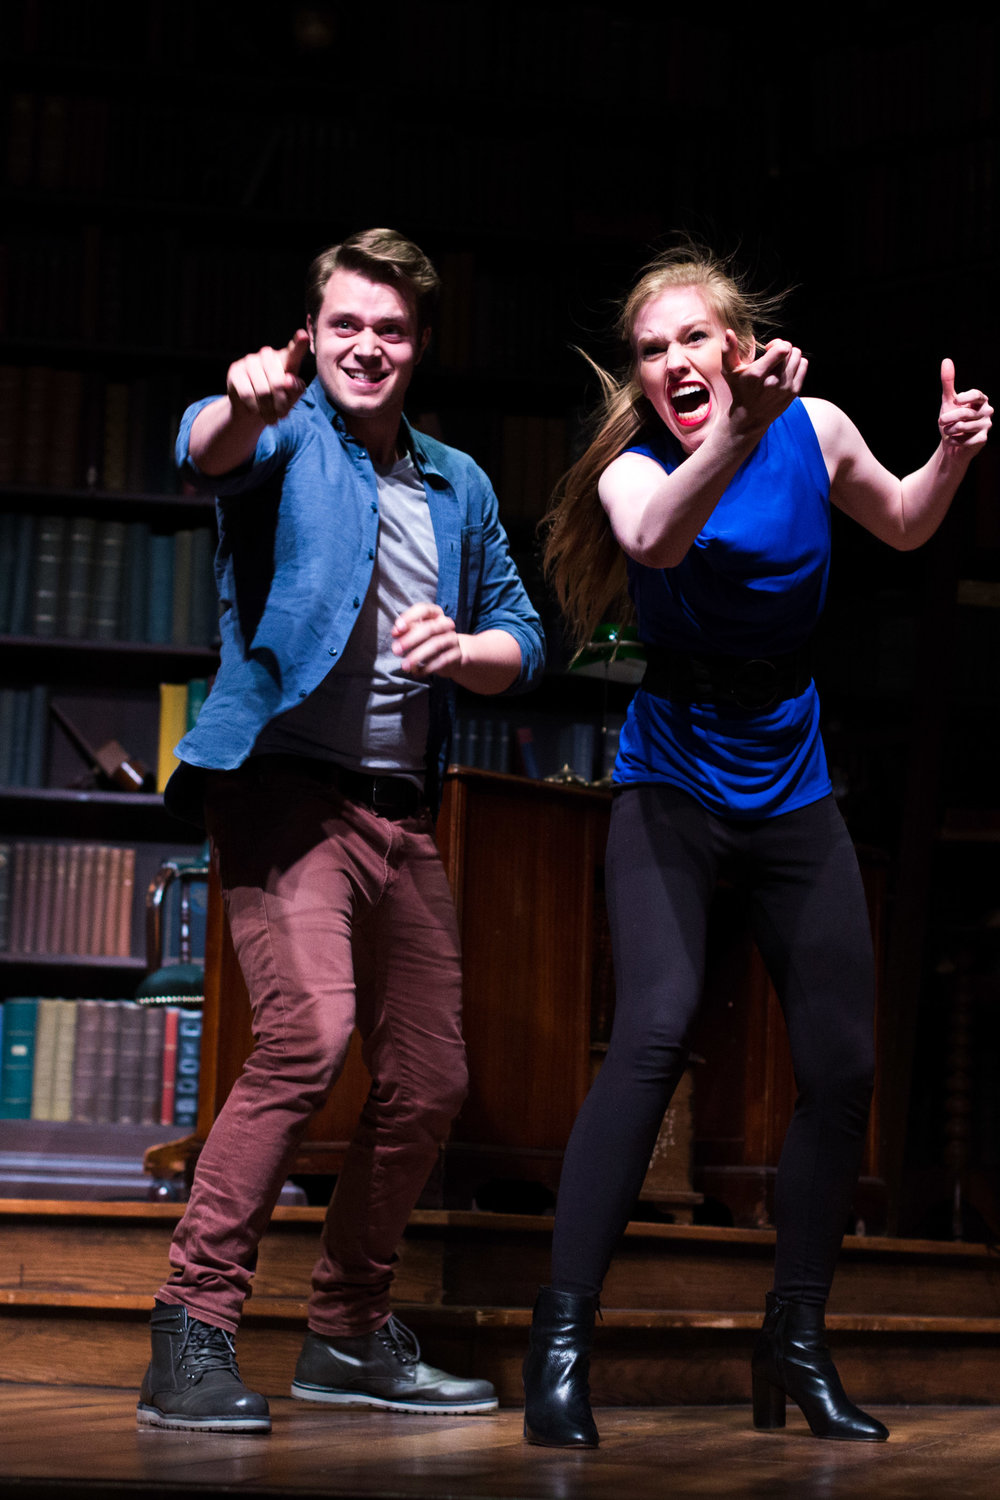 """Hello, New York! - In addition to NYC Showcases, my 2016 Class of University of WI- Stevens Point BFA's put on a cabaret-style evening performance on May 19th in New York City at the Davenport Theatre. We were able to present our Showcase our to friends, alumni, and more industry professionals. Click """"Read More"""" to see some amazing photos of the event taken by the talented Cole Witter!"""